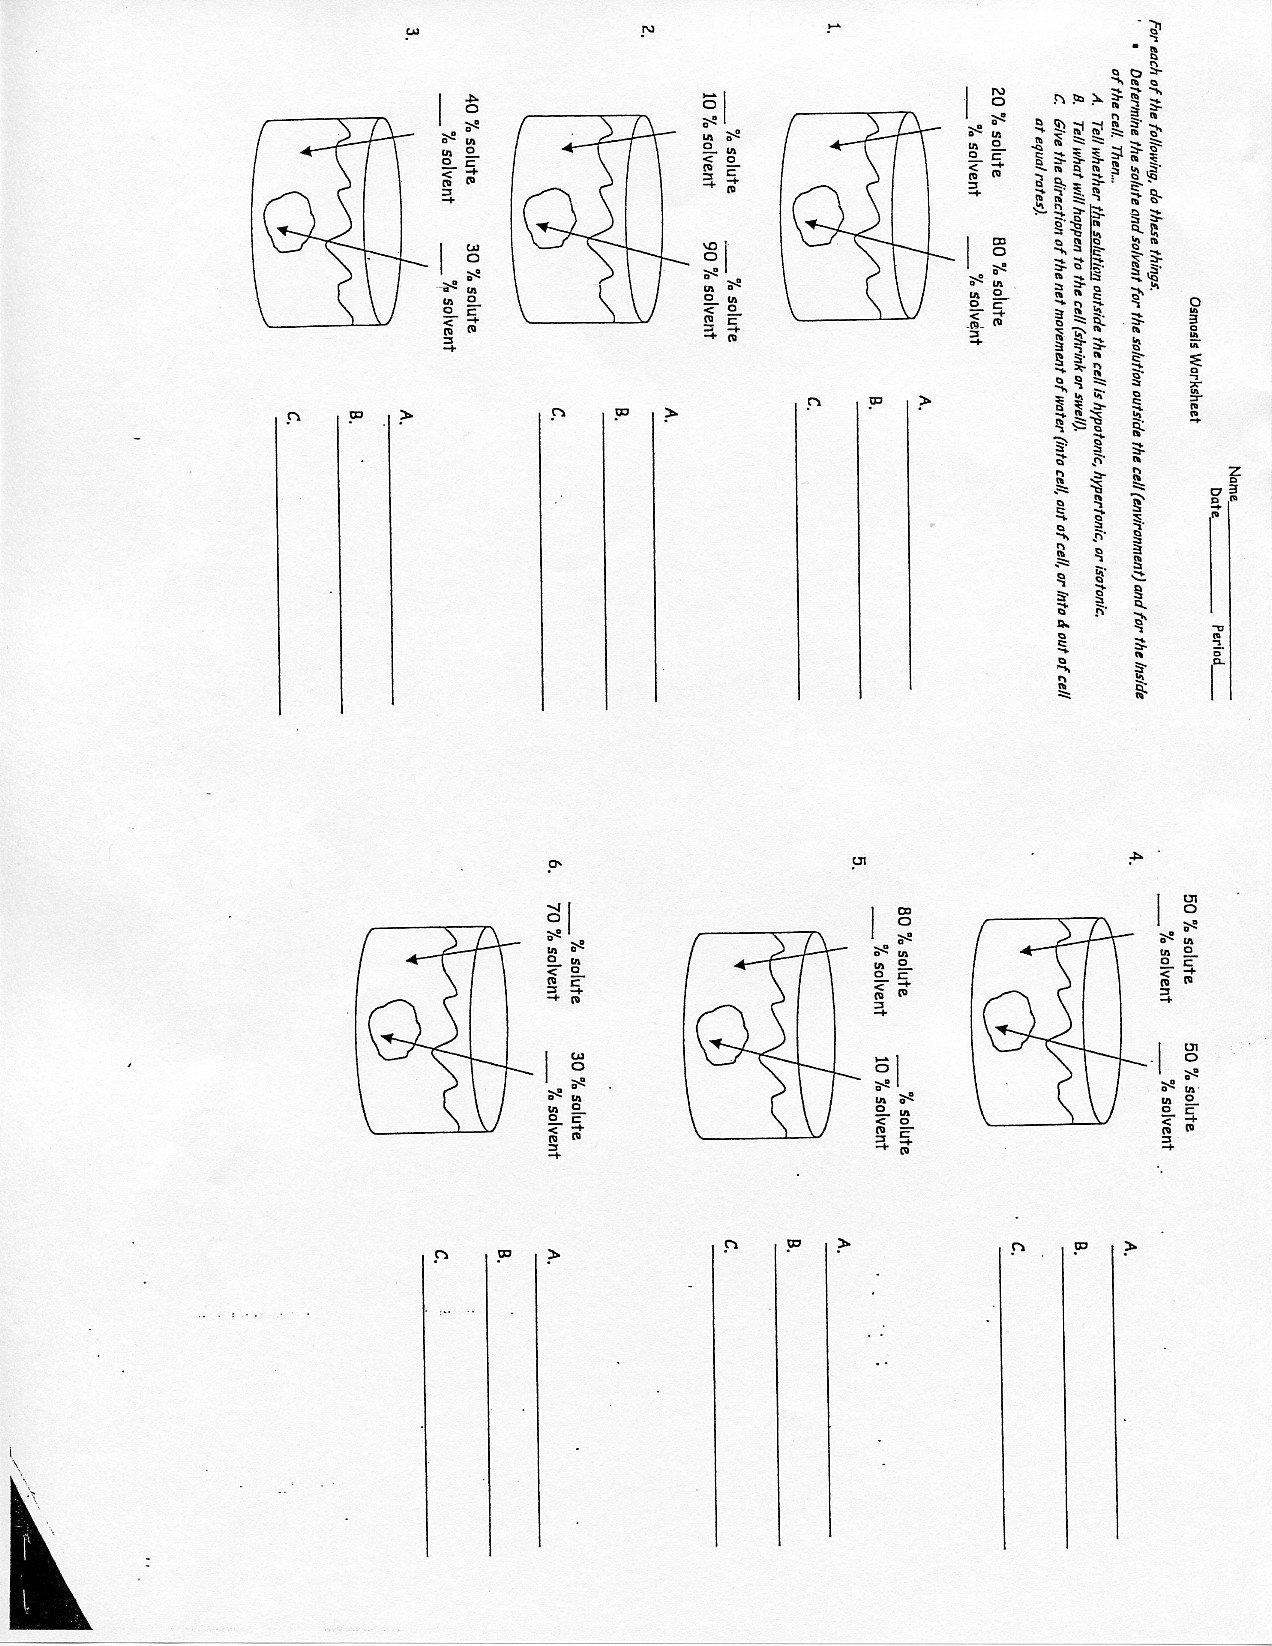 Passive And Active Transport Worksheet – Passive and Active Transport Worksheet